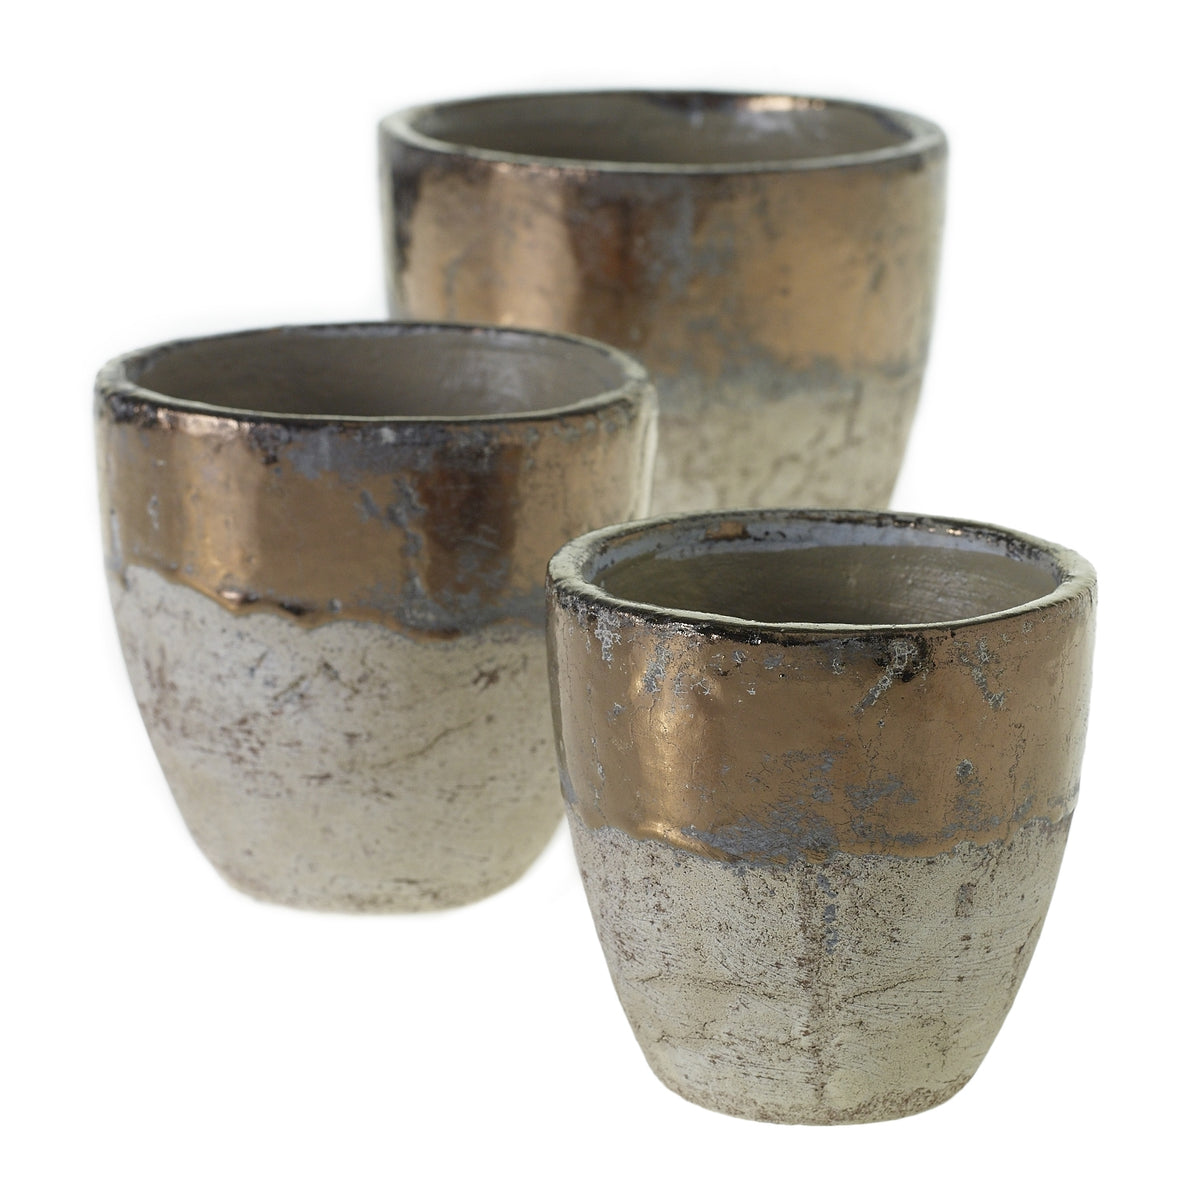 Grit and Glam Terracotta Pot - 7 x 6.75